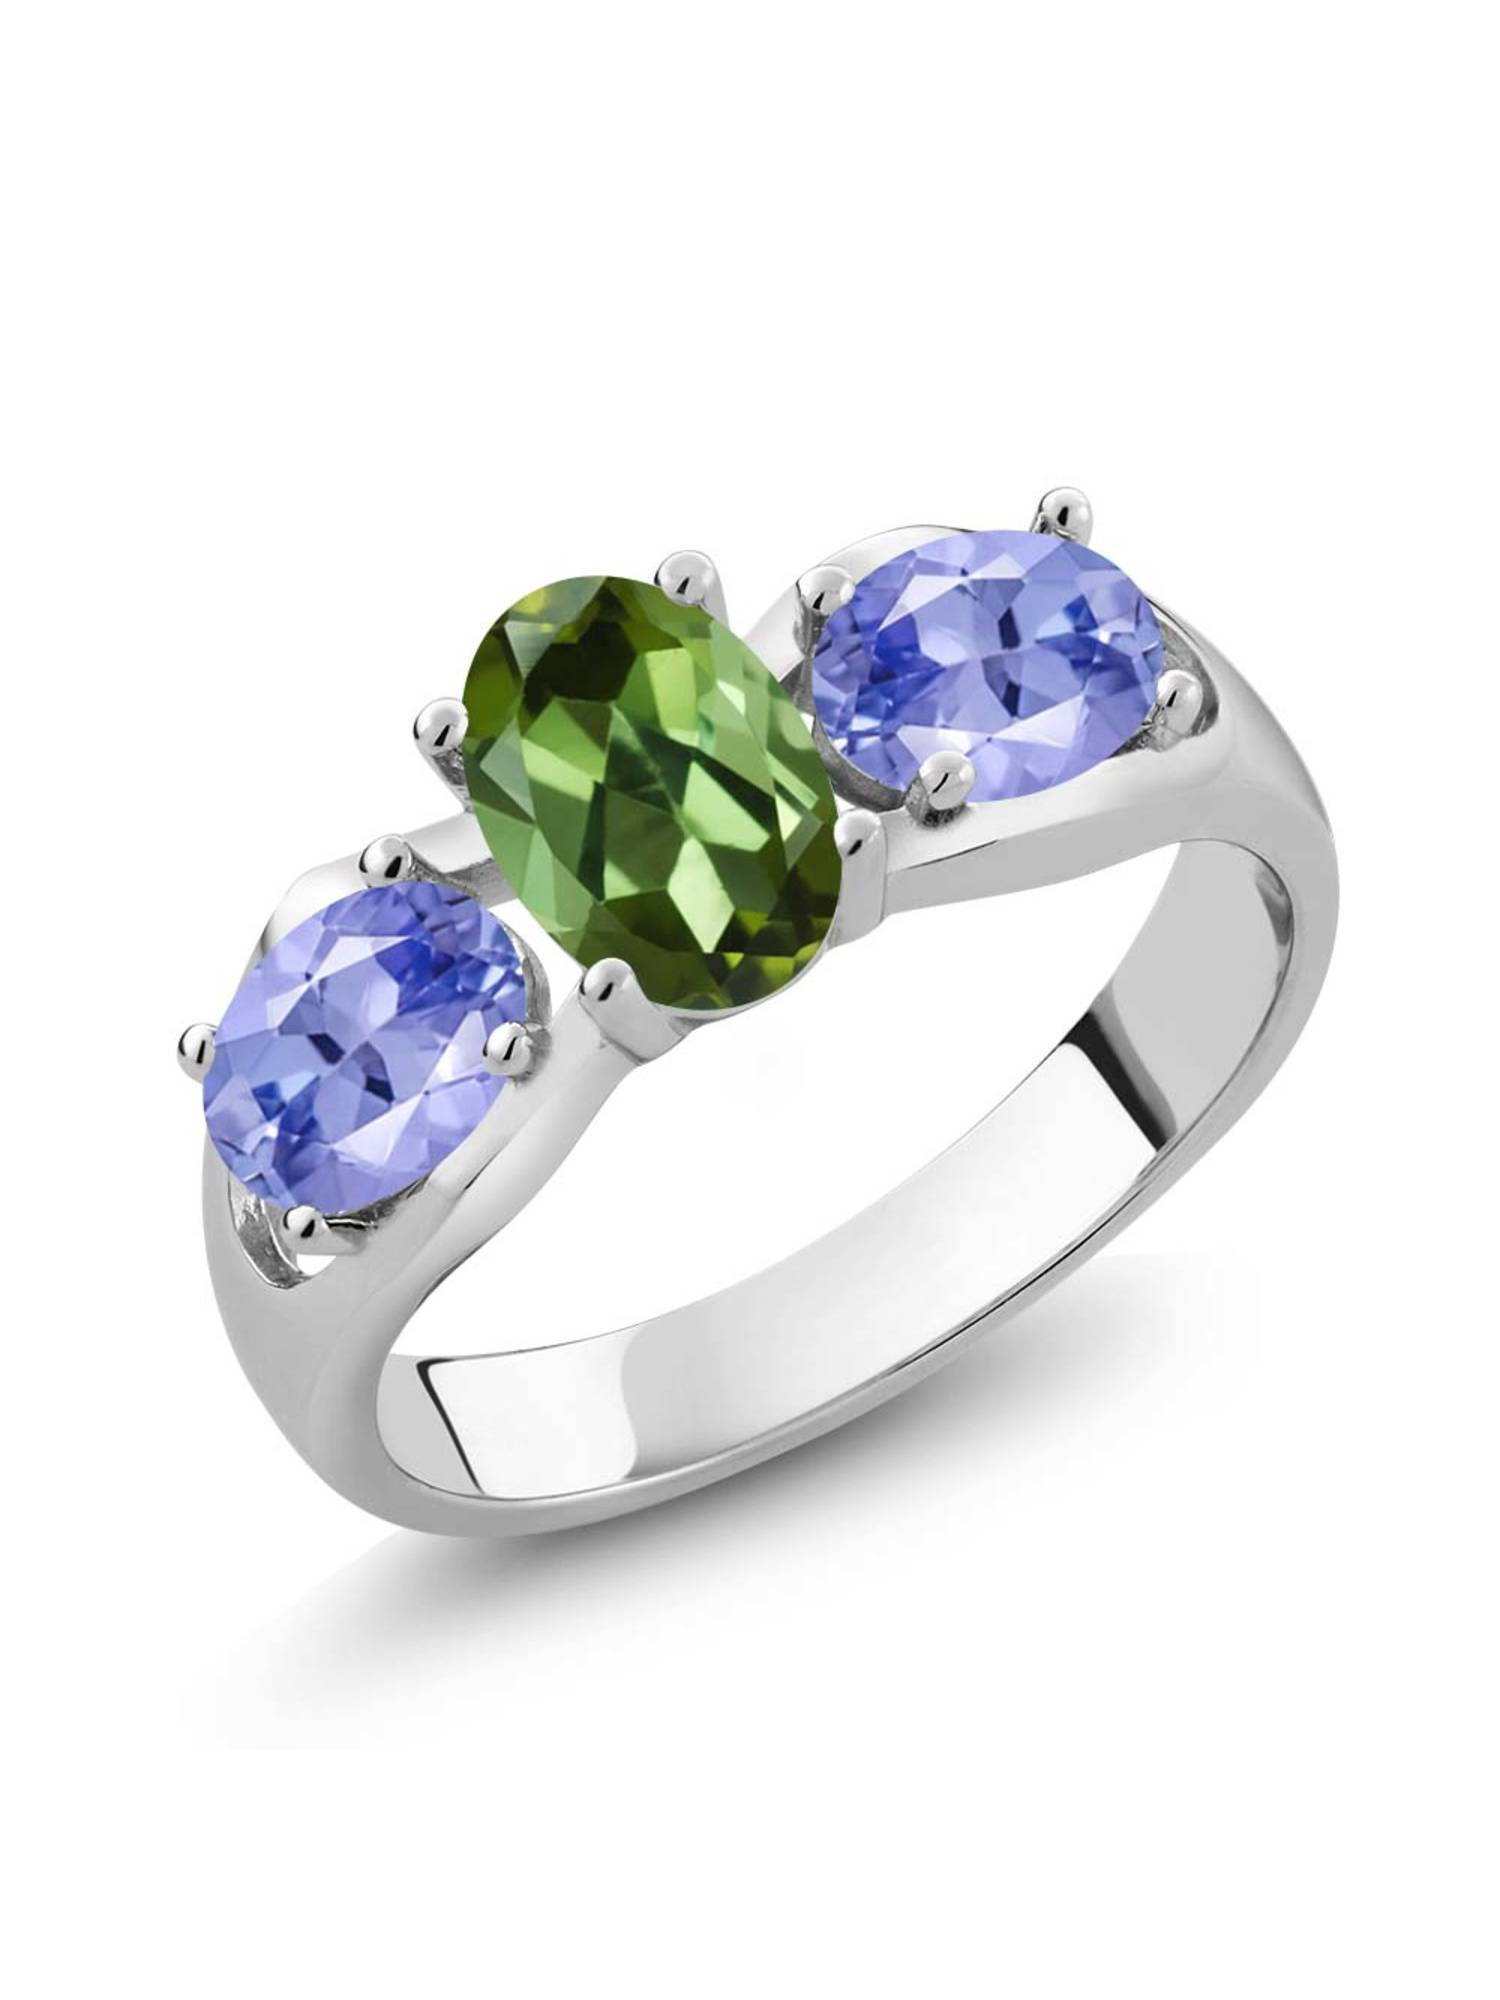 1.60 Ct Oval Green Tourmaline Blue Tanzanite 925 Sterling Silver Ring by